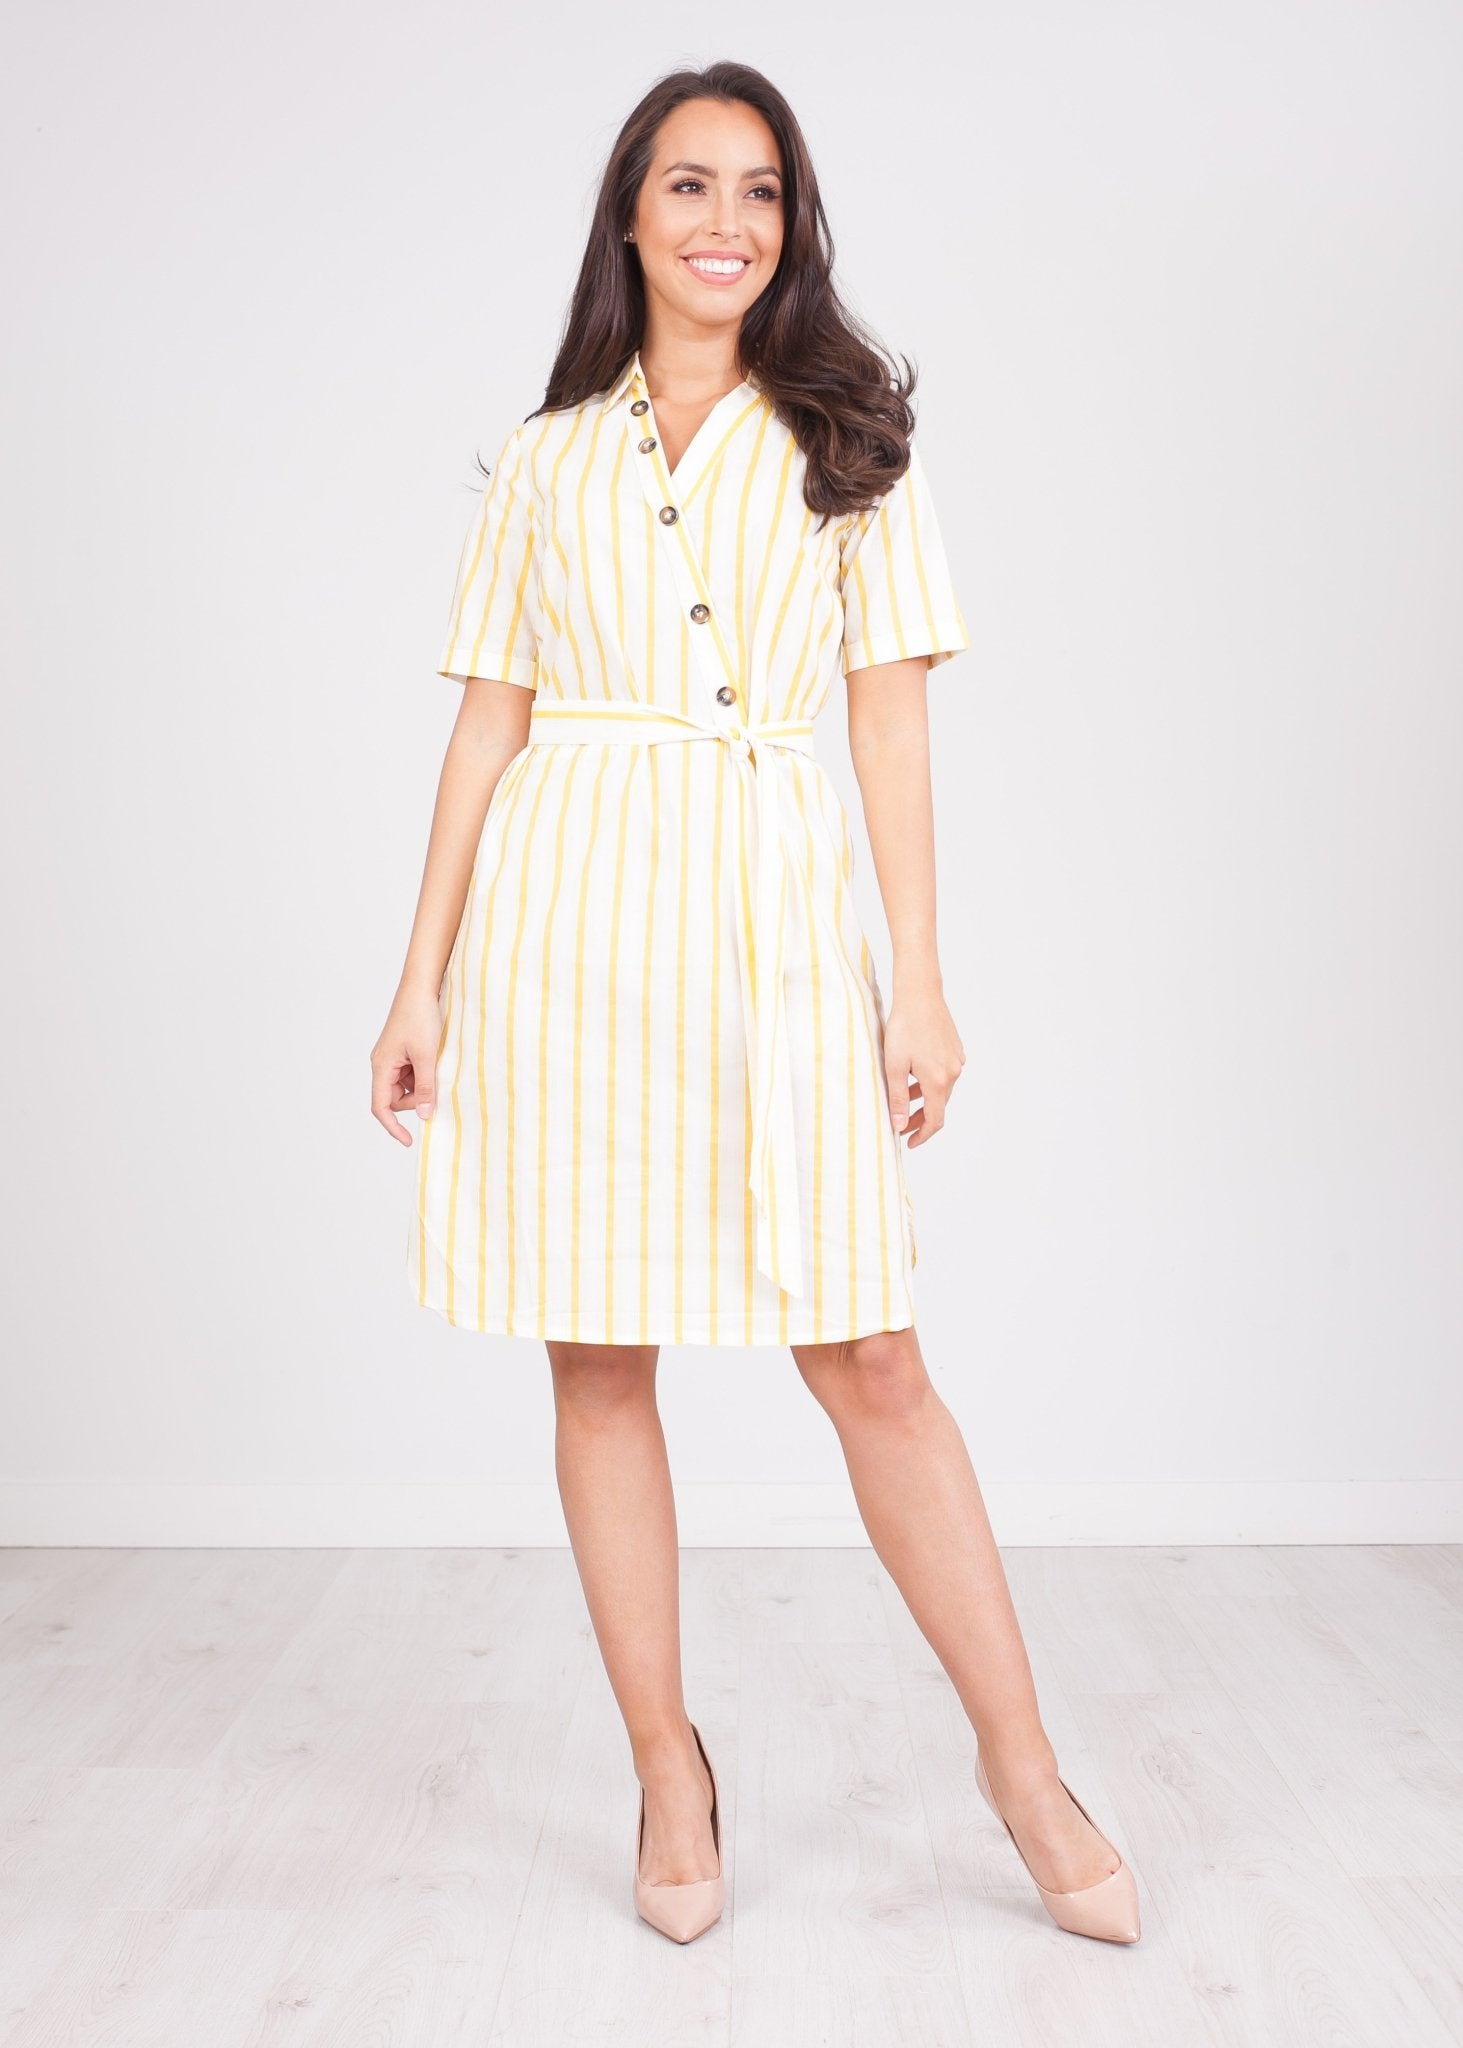 Sissy Yellow Stripe Dress - The Walk in Wardrobe